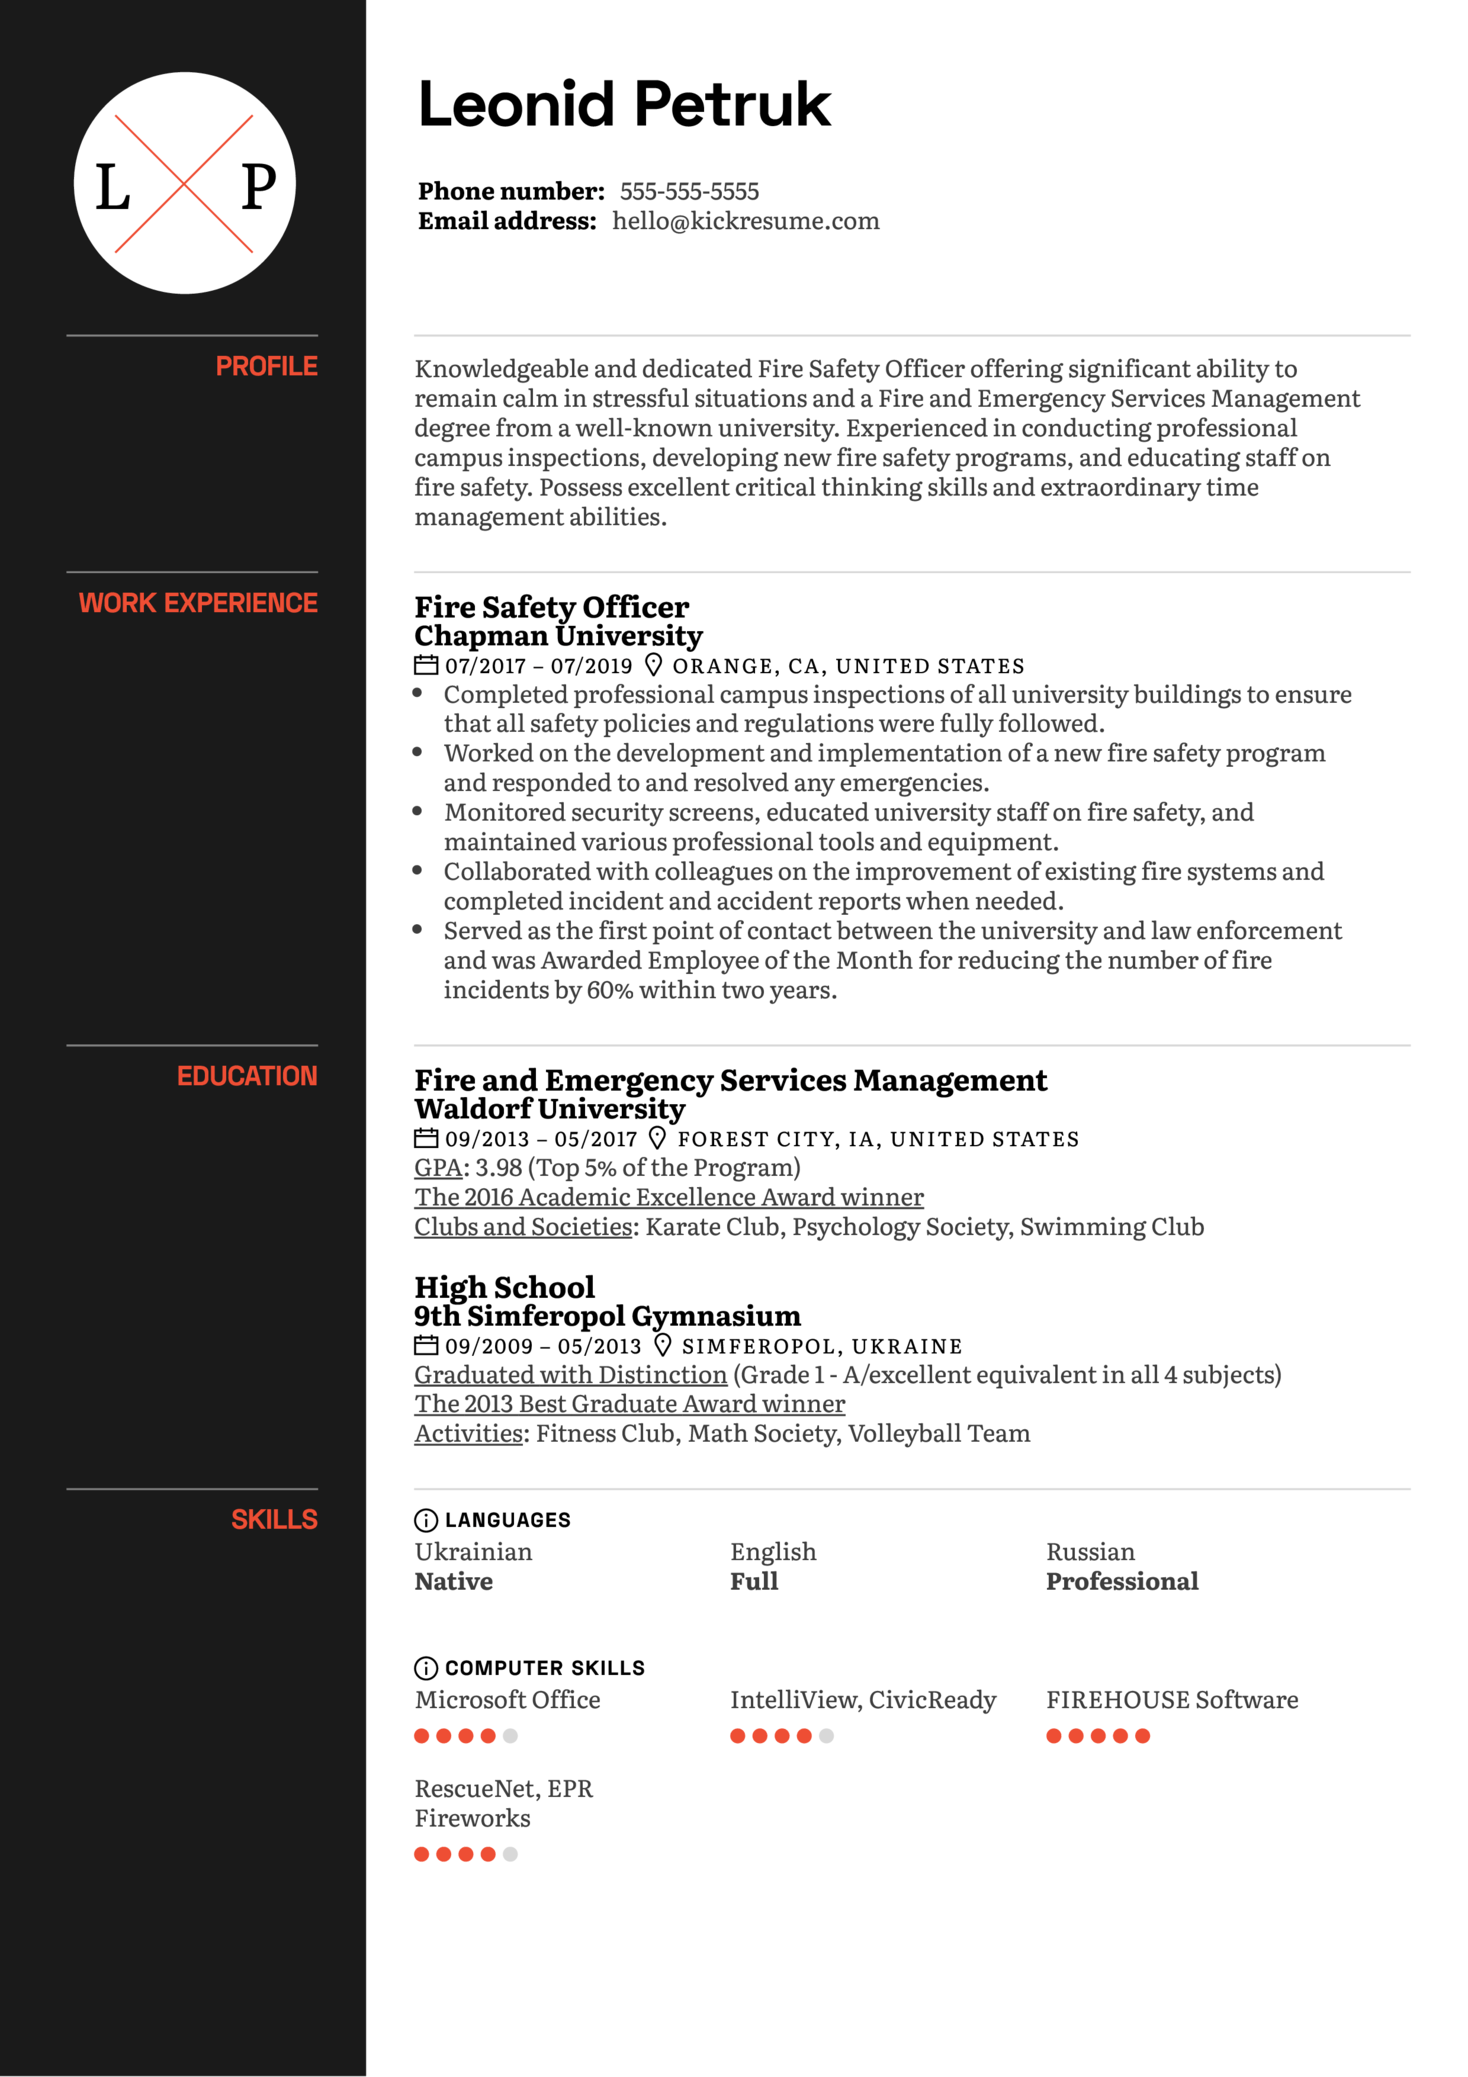 Fire Safety Officer Resume Sample Kickresume